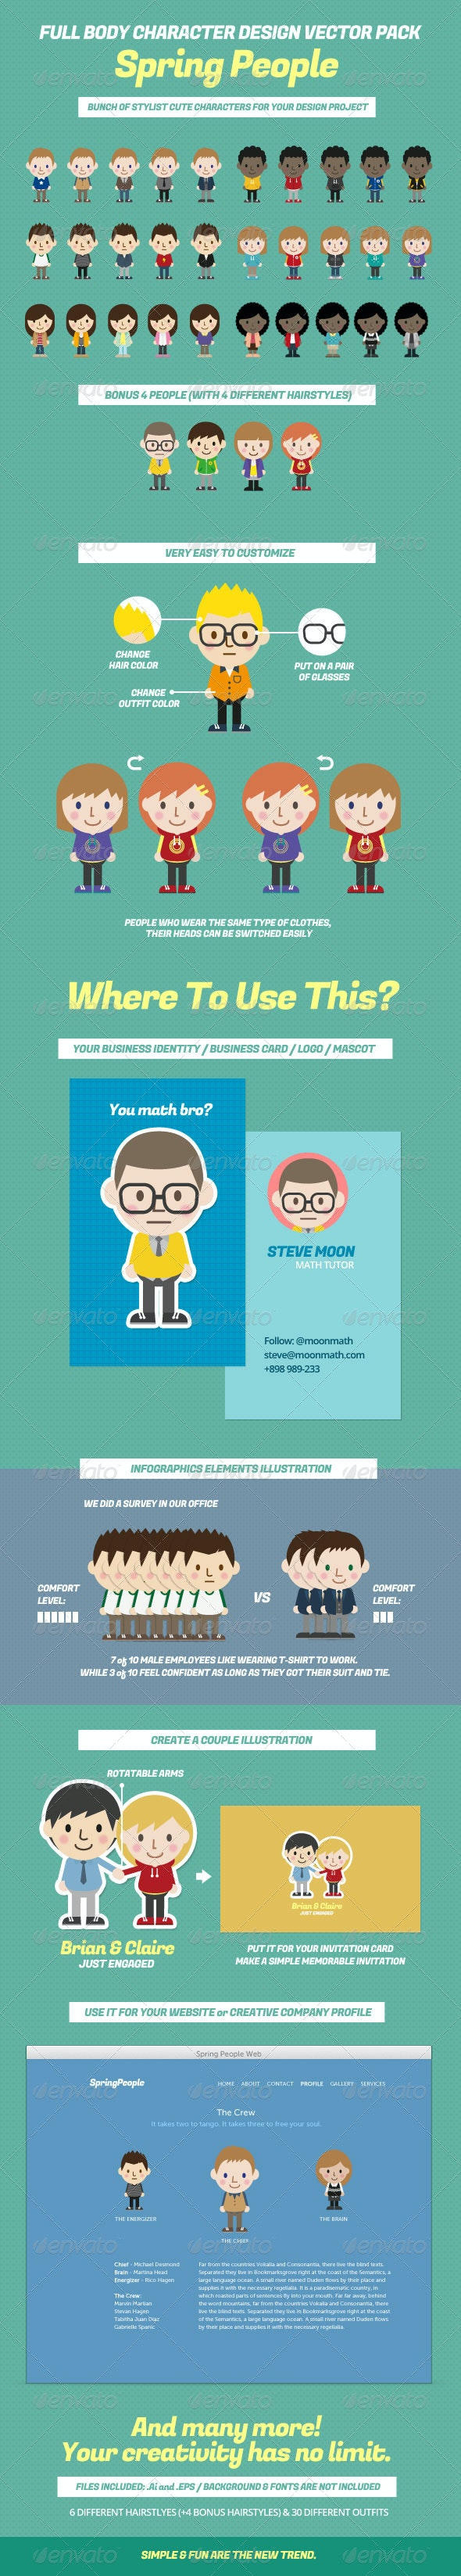 Full Body Character Design Vector Pack - People Characters